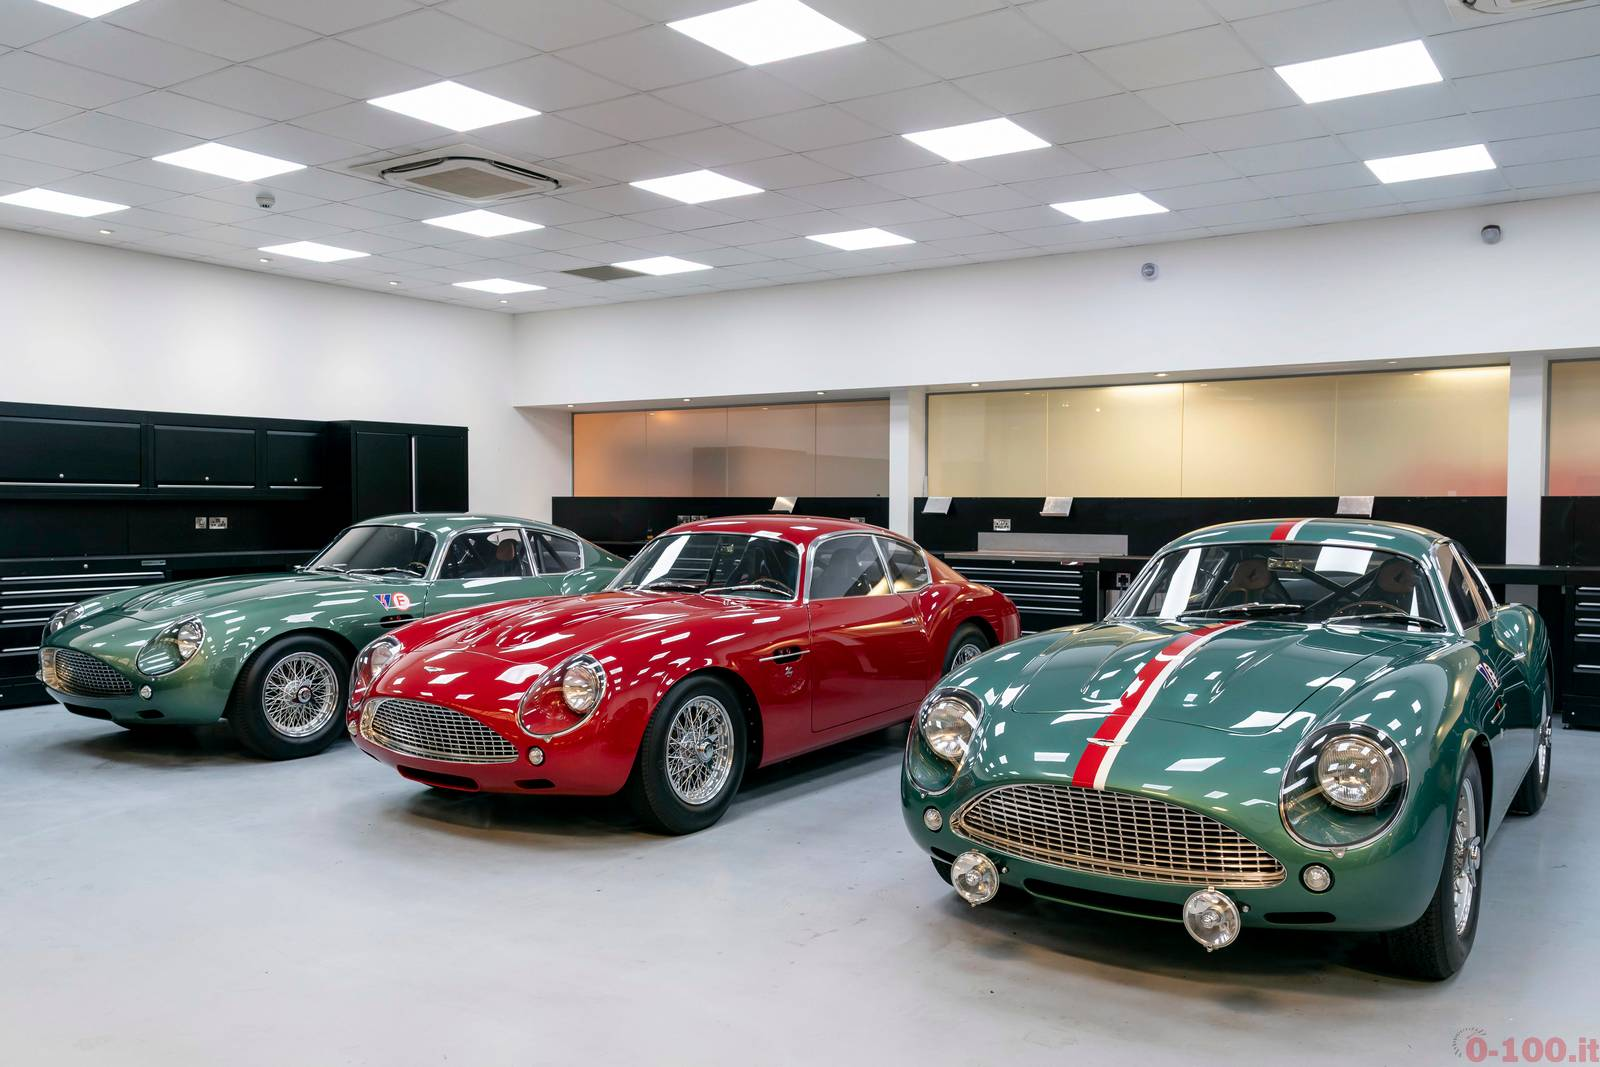 martin_db4_gtz_sanction_3_zagato_centenary_collection_0-100_1